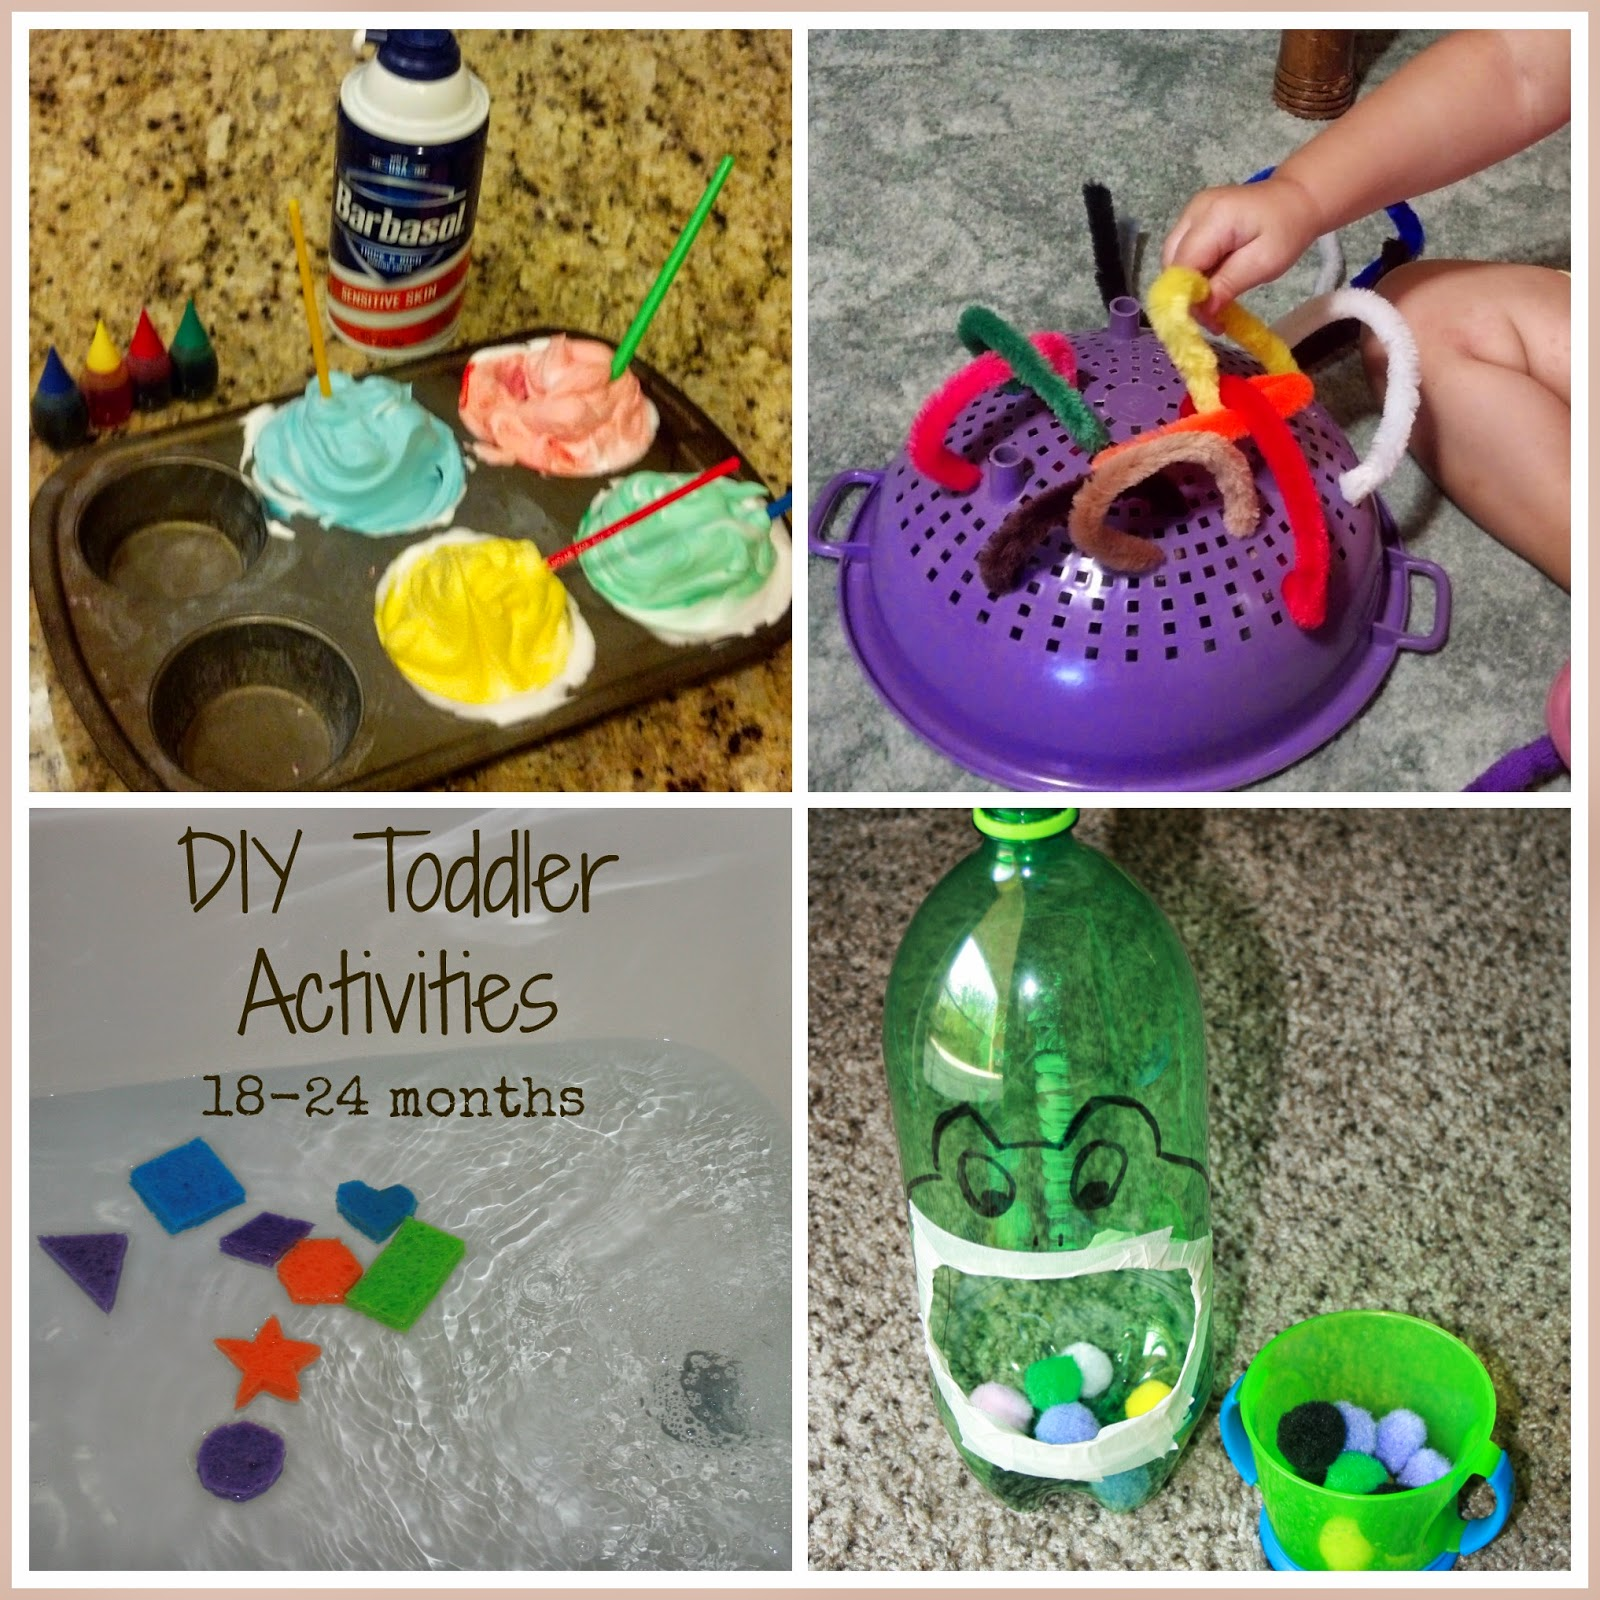 Hassle Free Housewife Easy Educational Activities for Toddlers